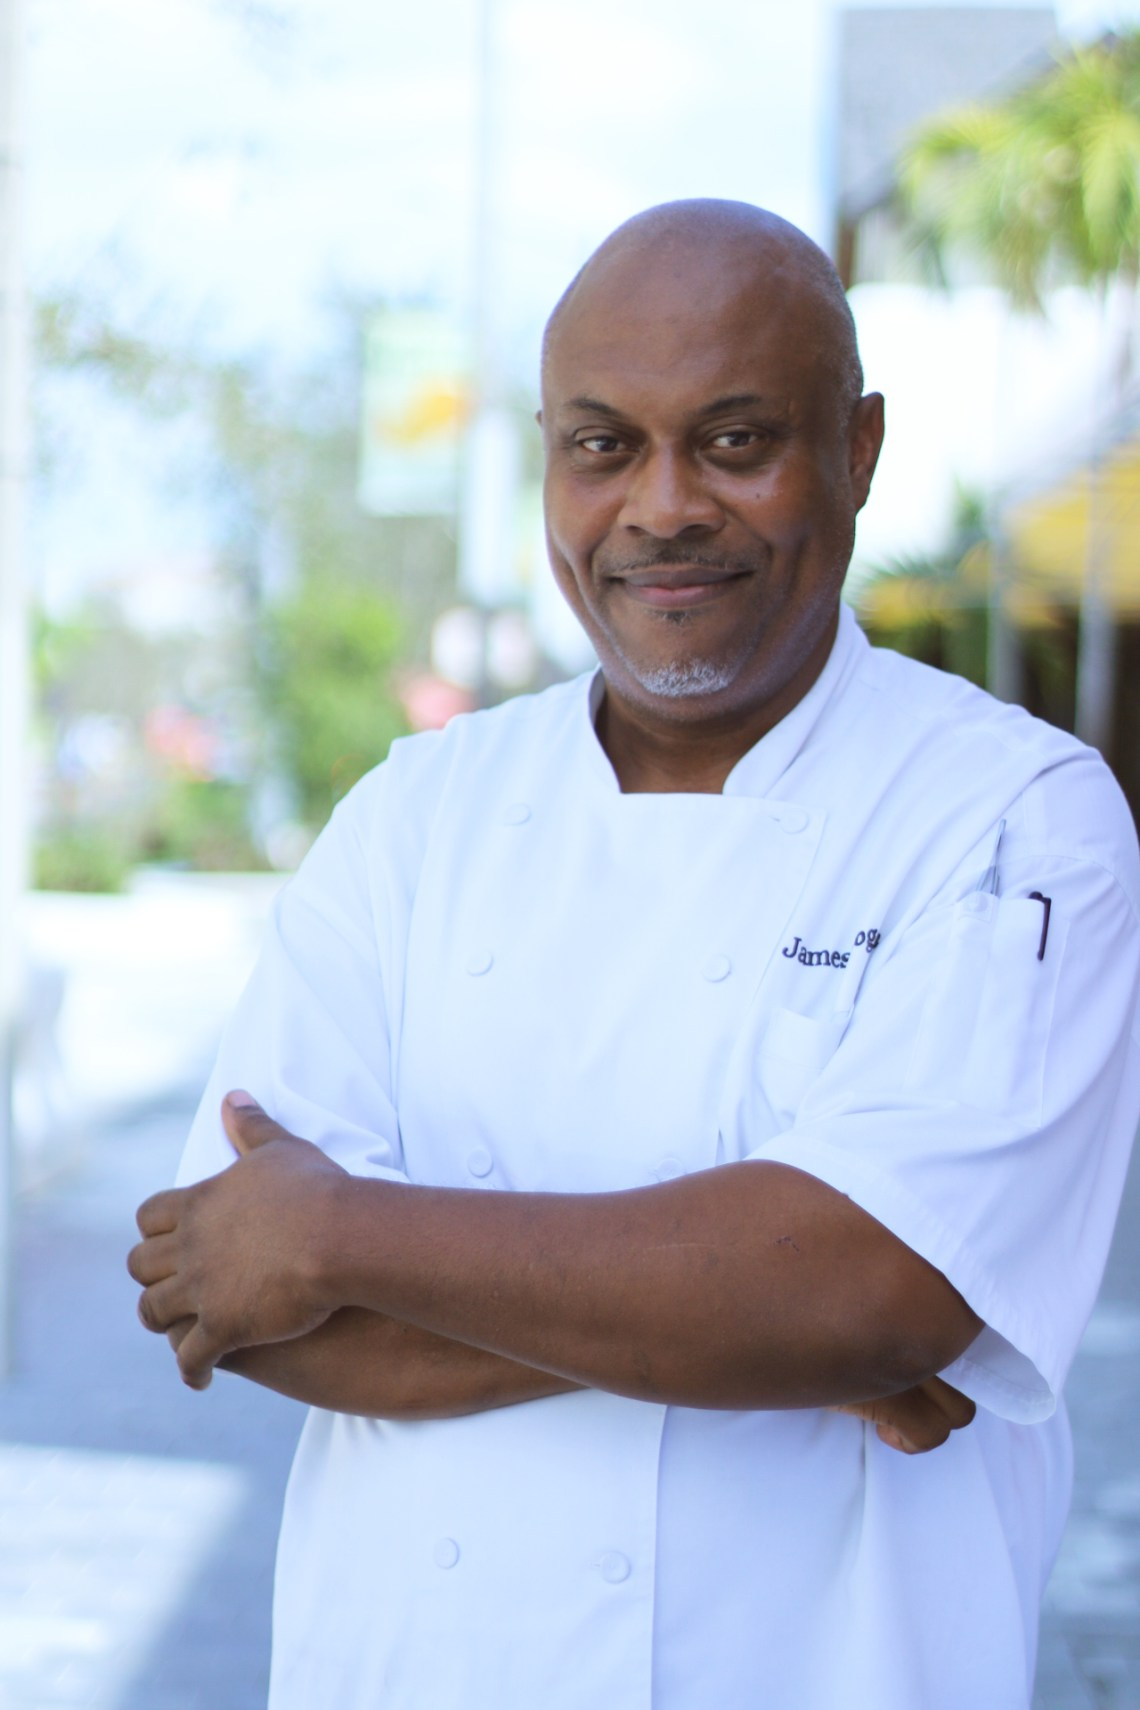 Chef James from Le Provençal the best French restaurant in Coral Gables. Miami, Florida.